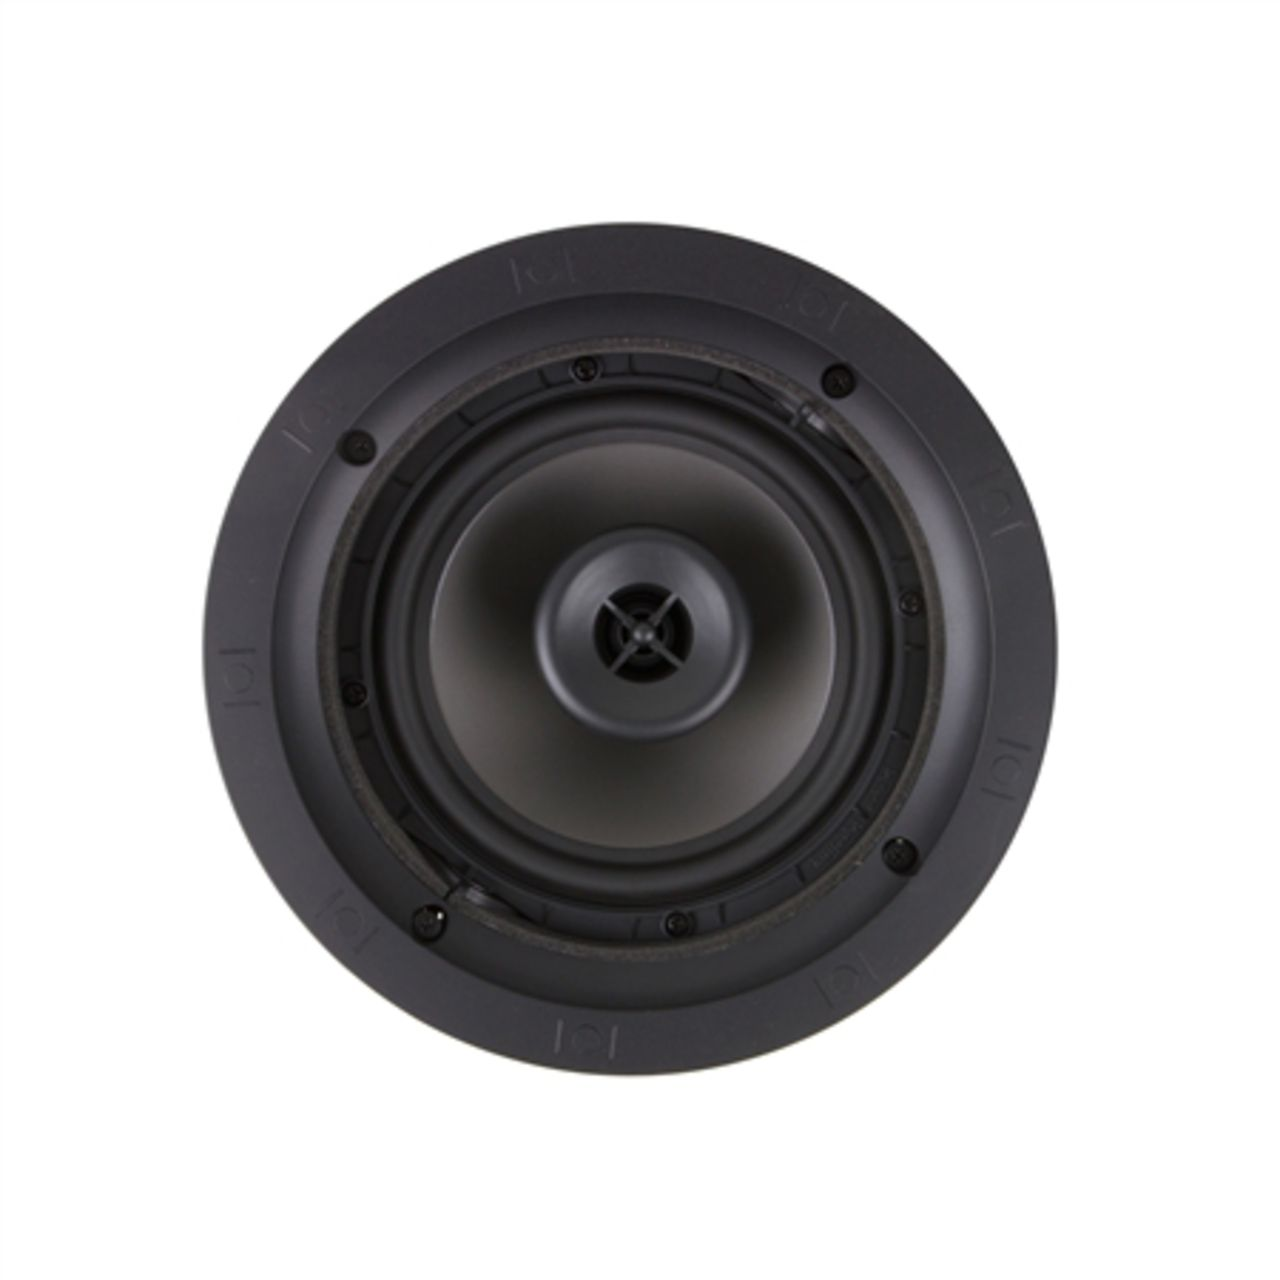 Klipsch: CDT-2650-C II In-Ceiling Speaker